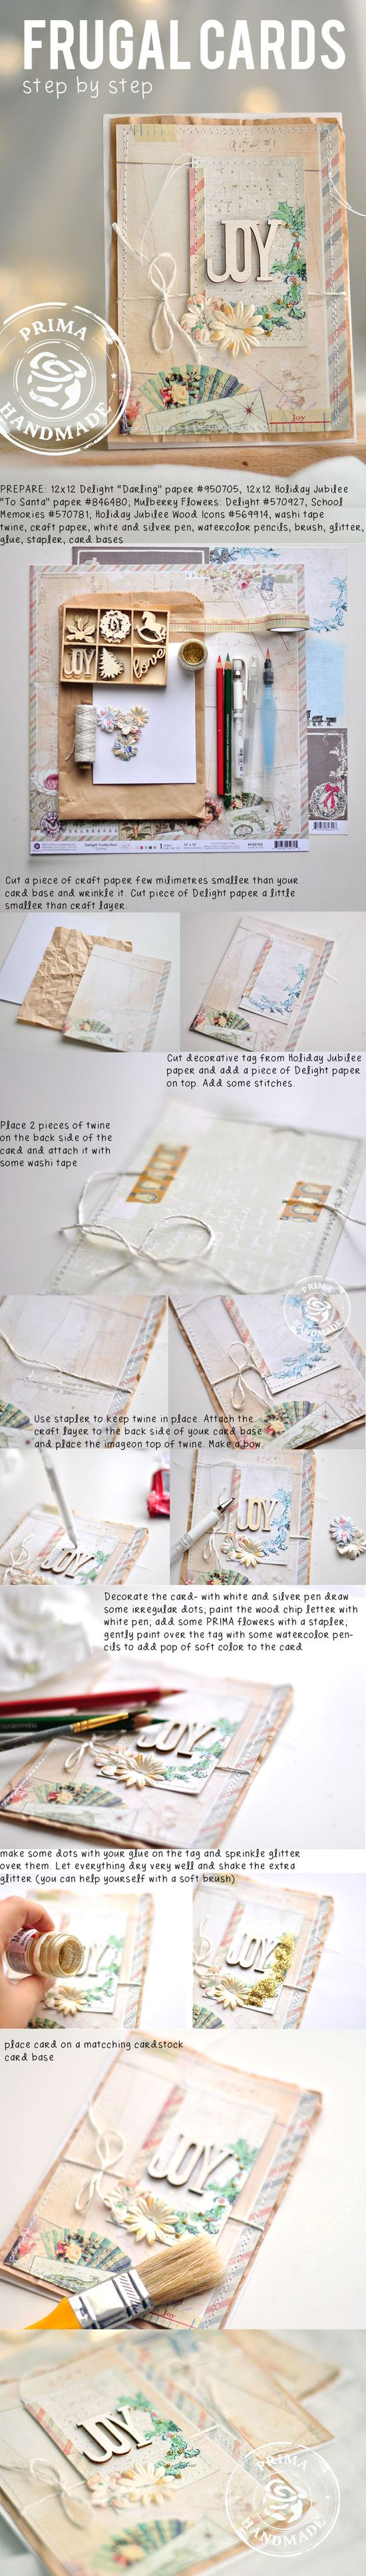 FRUGAL CARDS step by step by Kasia